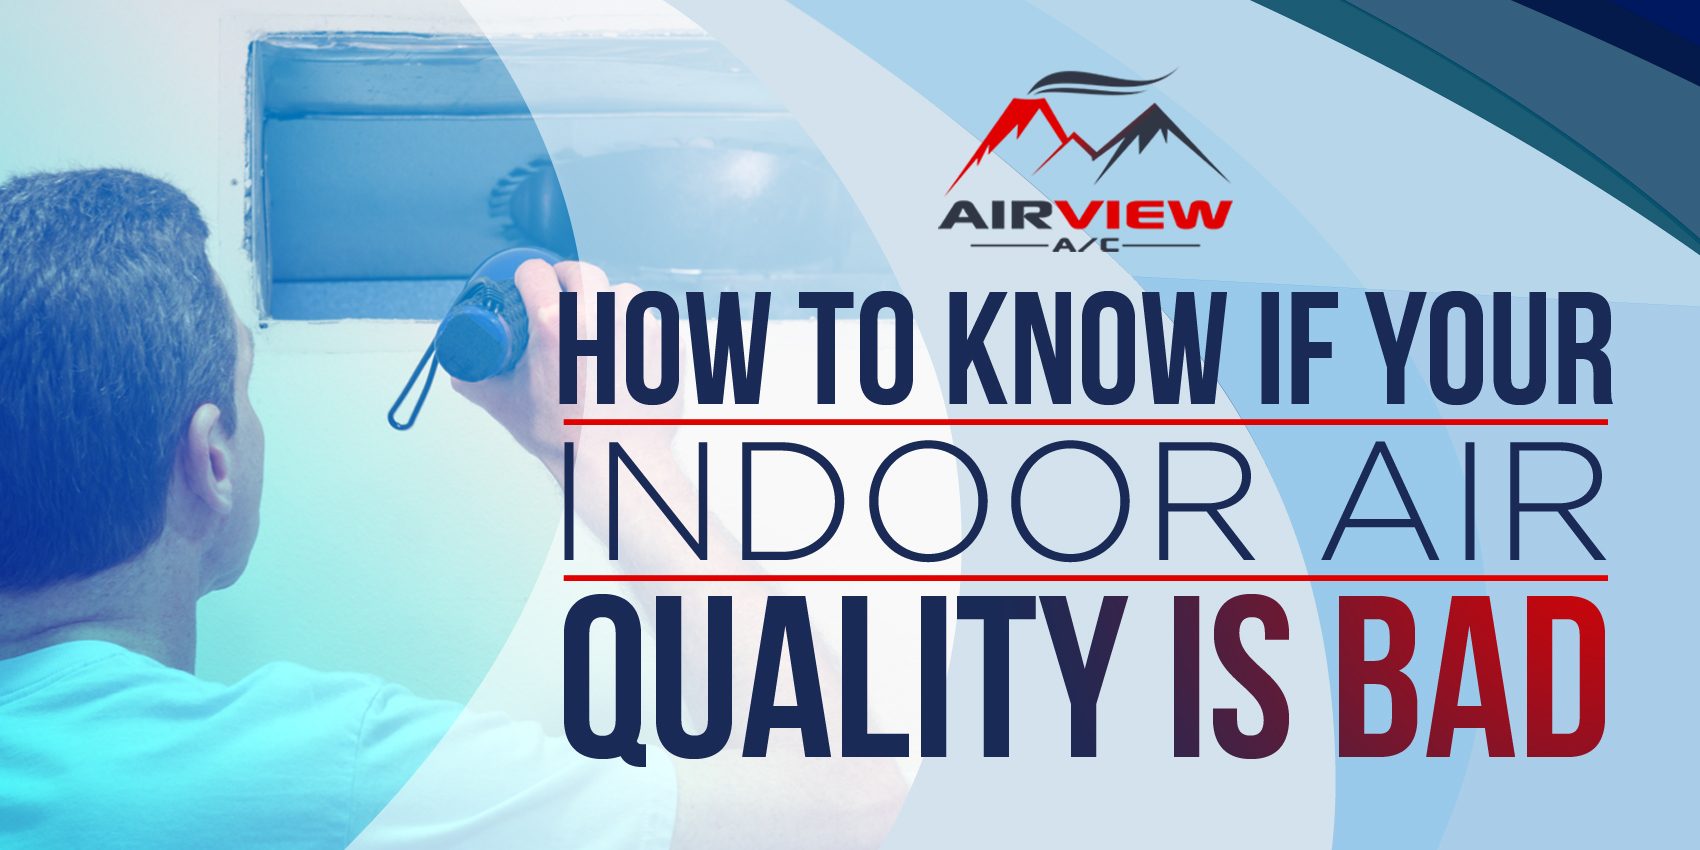 How To Know If Your Indoor Air Quality Is Bad